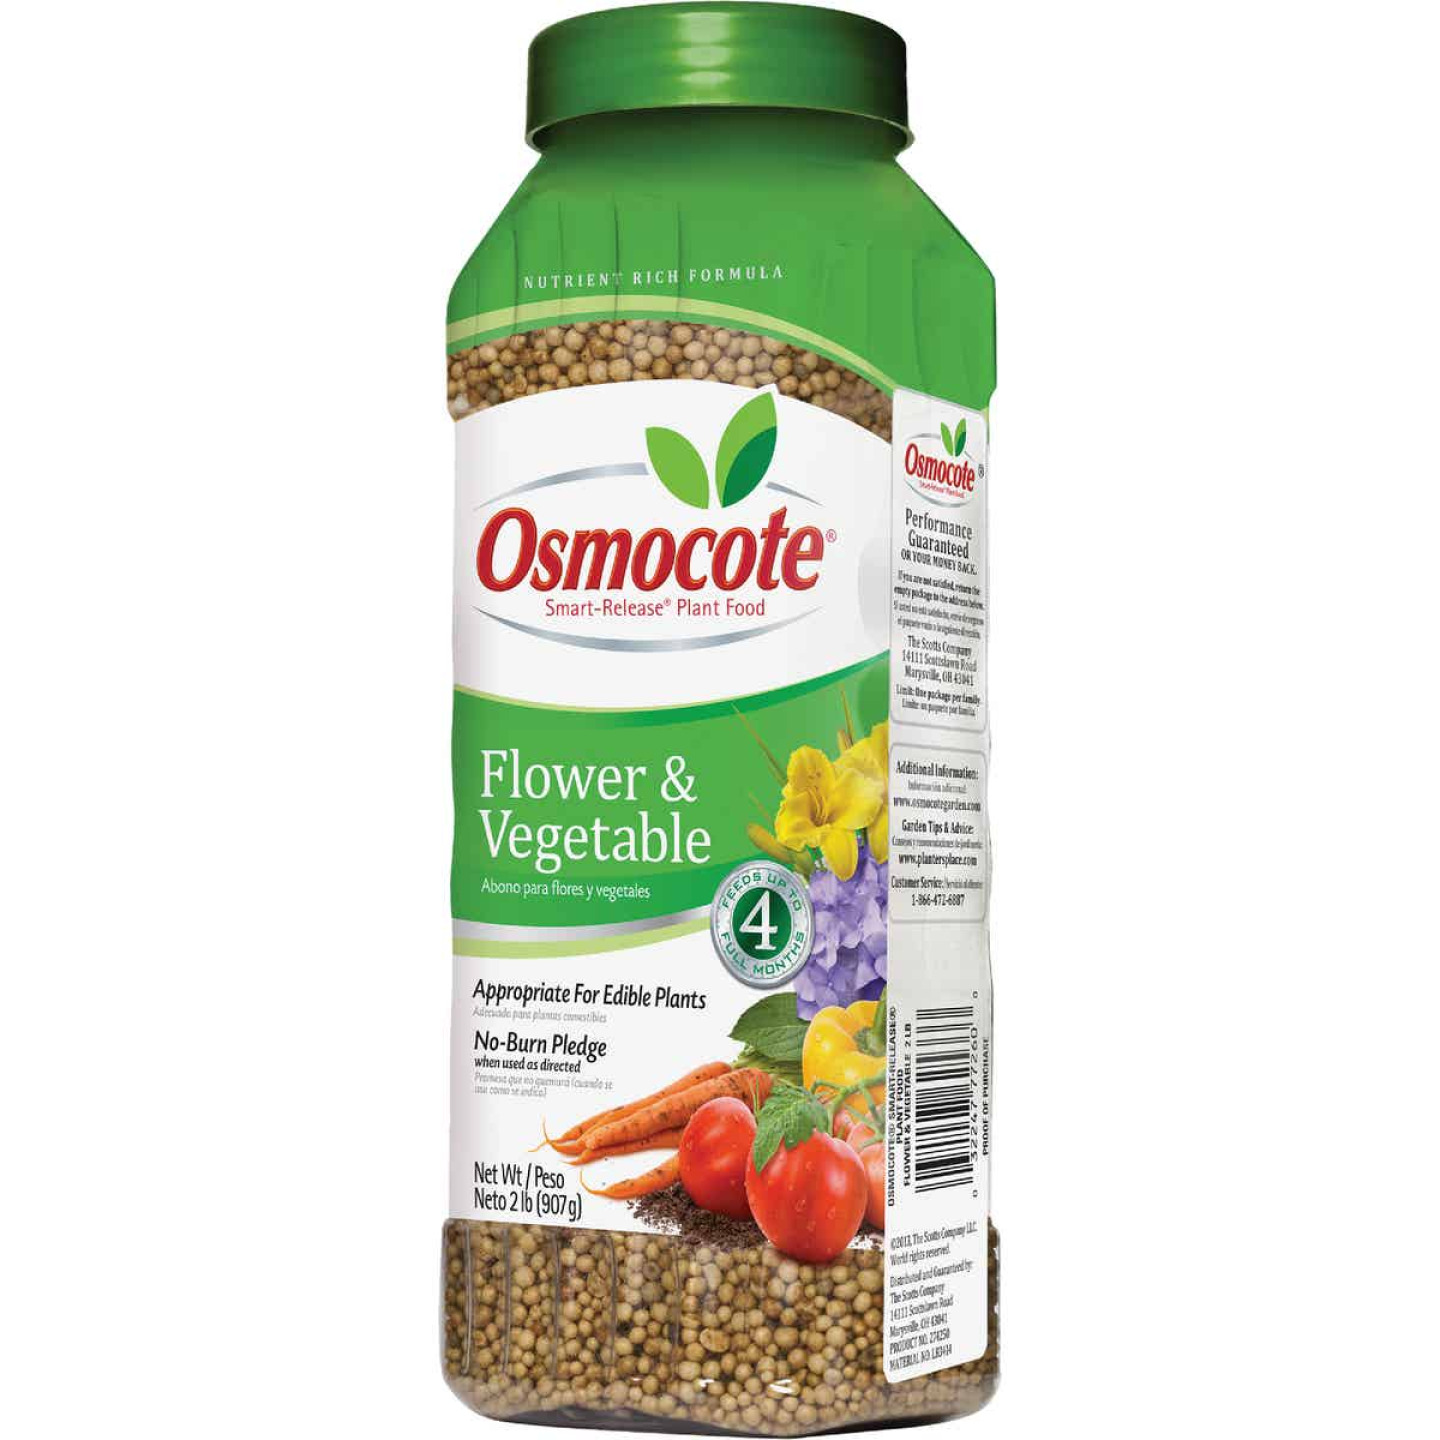 Osmocote 2 Lb. 14-14-14 Flower & Vegetable Smart Release Dry Plant Food Image 1